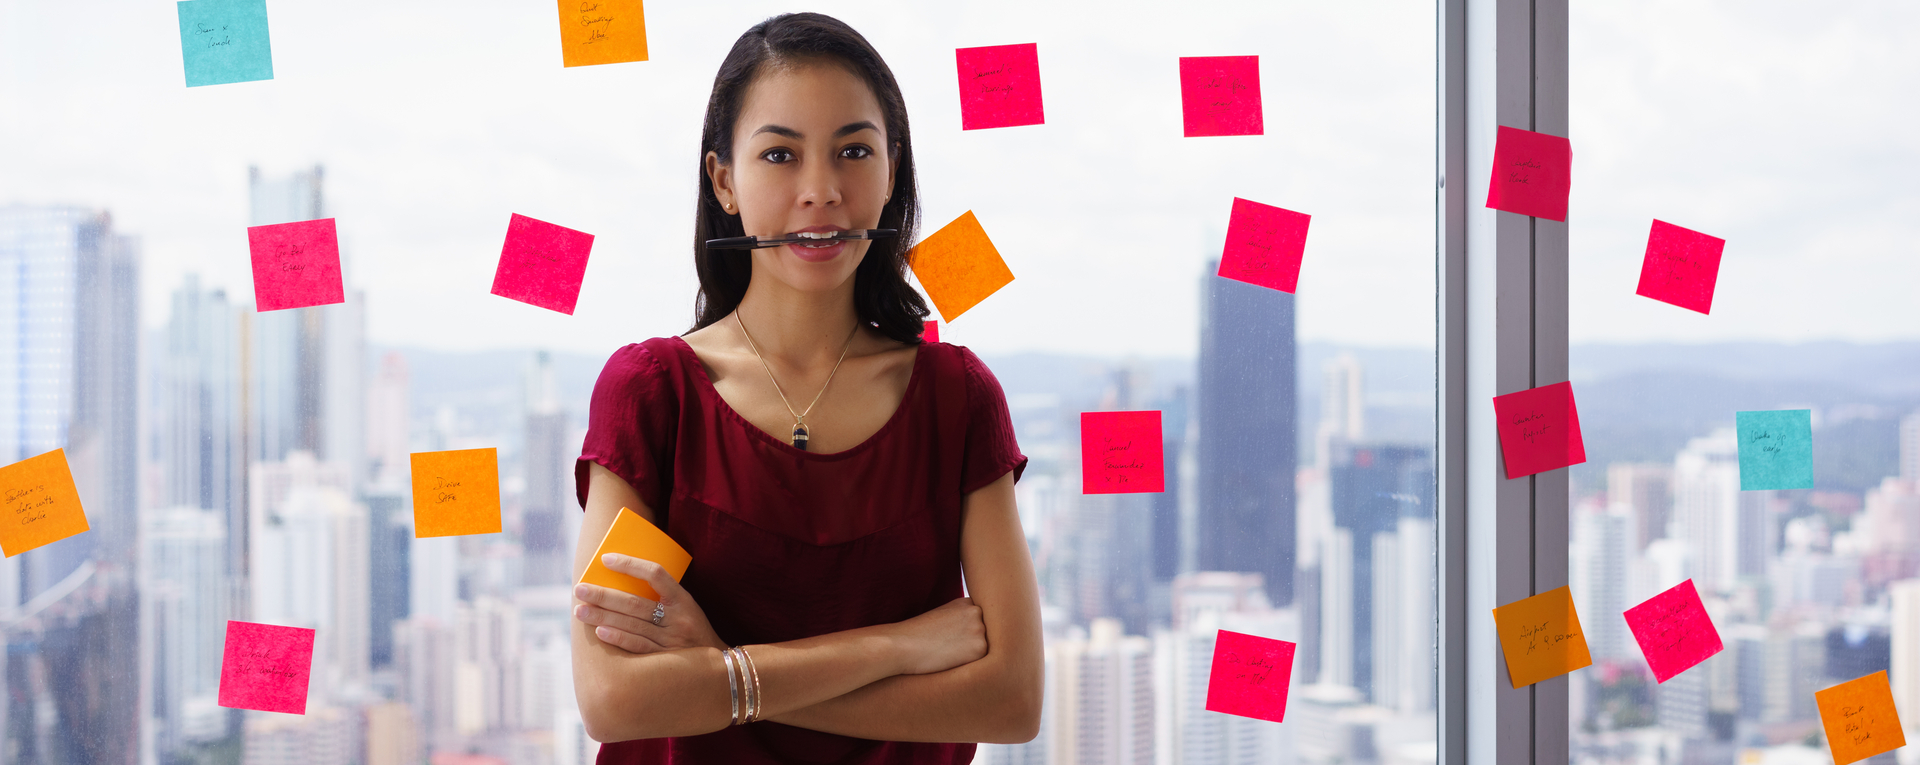 woman stands in office at high floor, against window full of adhesive notes with tasks